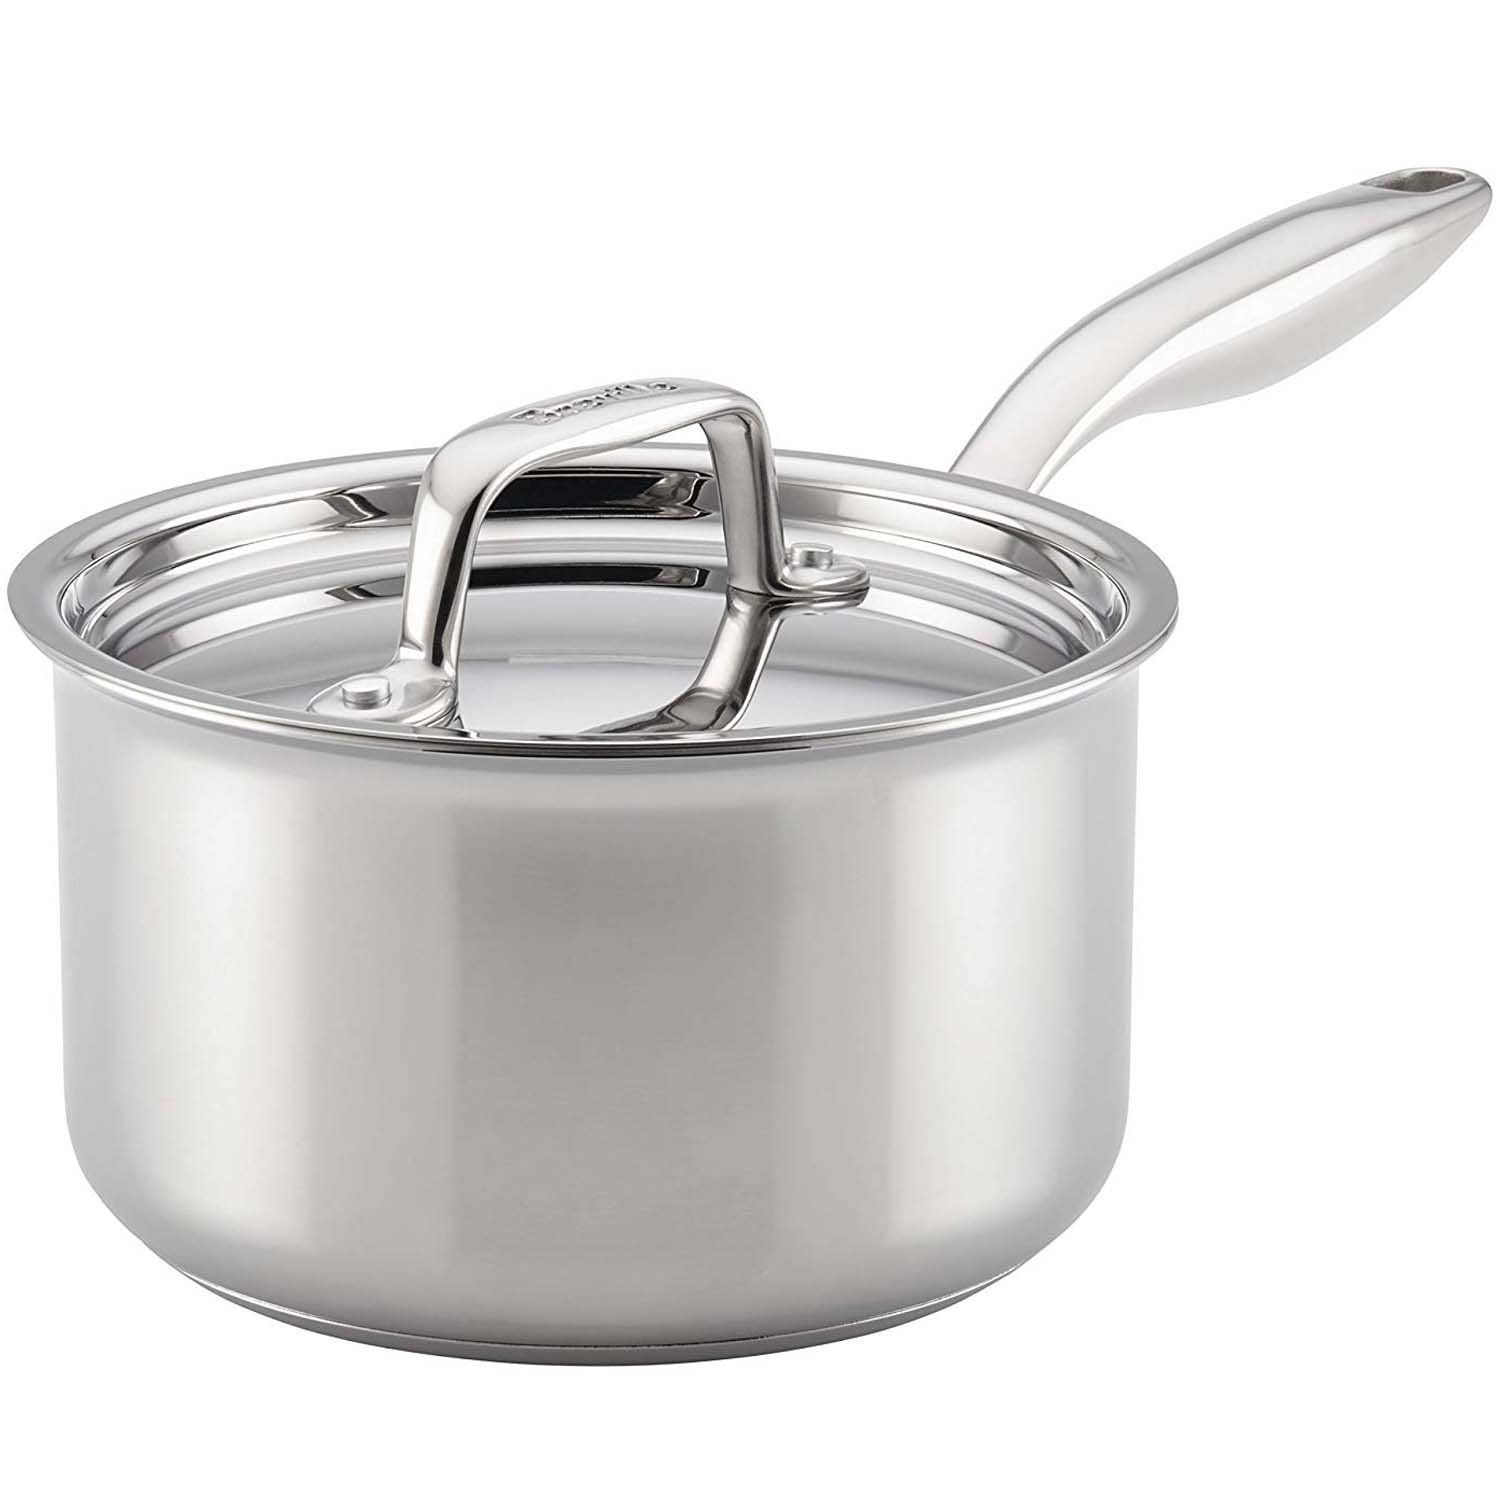 BREVILLE THERMAL PRO® CLAD STAINLESS STEEL 2QUART COVERED